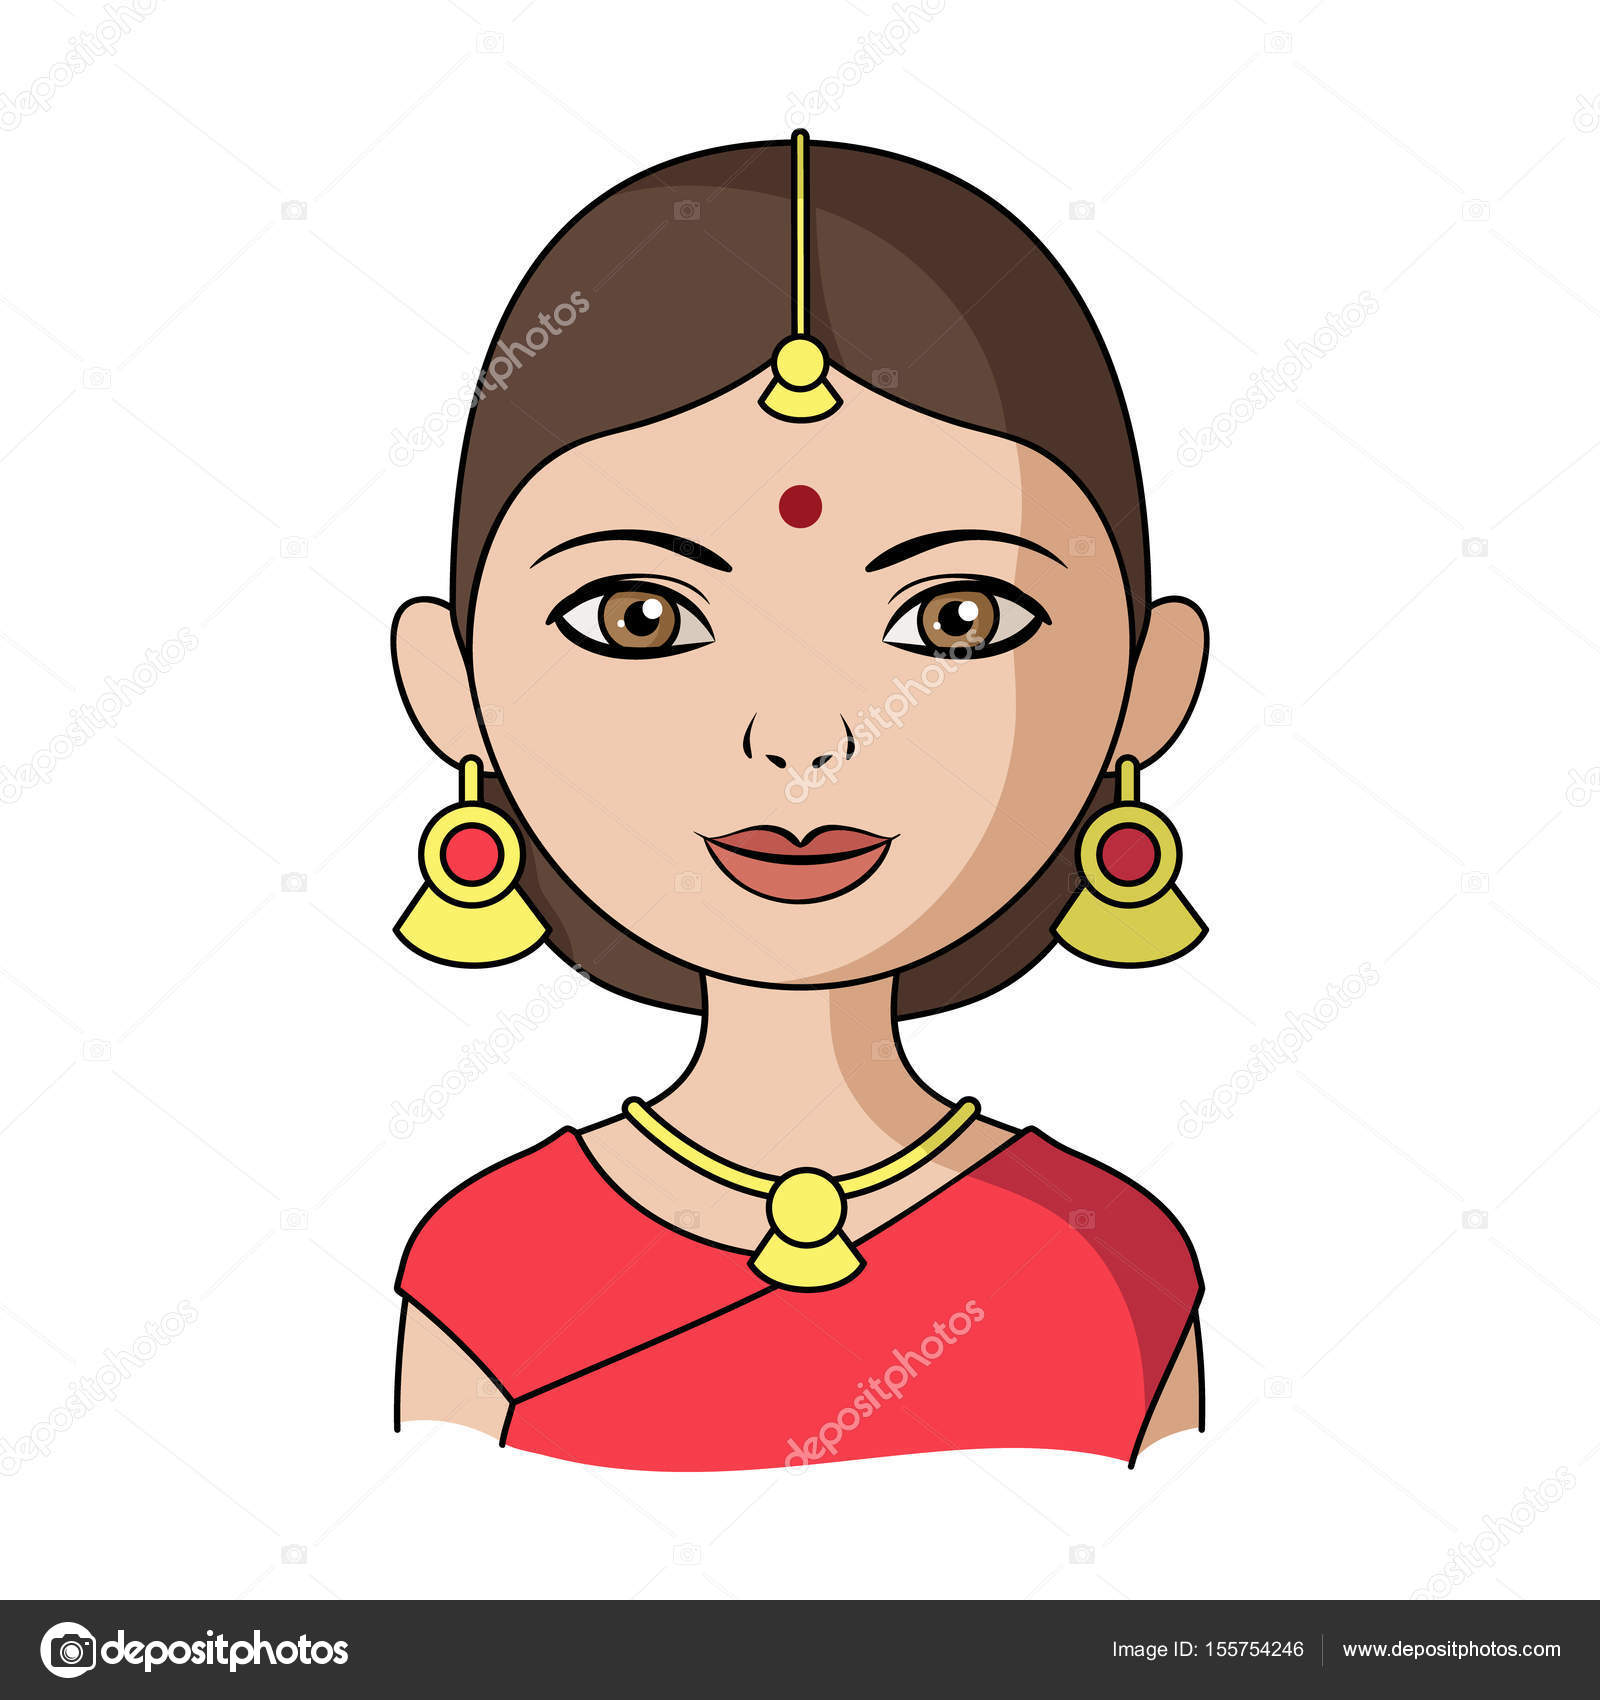 basalt hindu single women Do american women find indian men physically attractive in terms of dating women can ask i have always avoided dating indian men mainly because i.